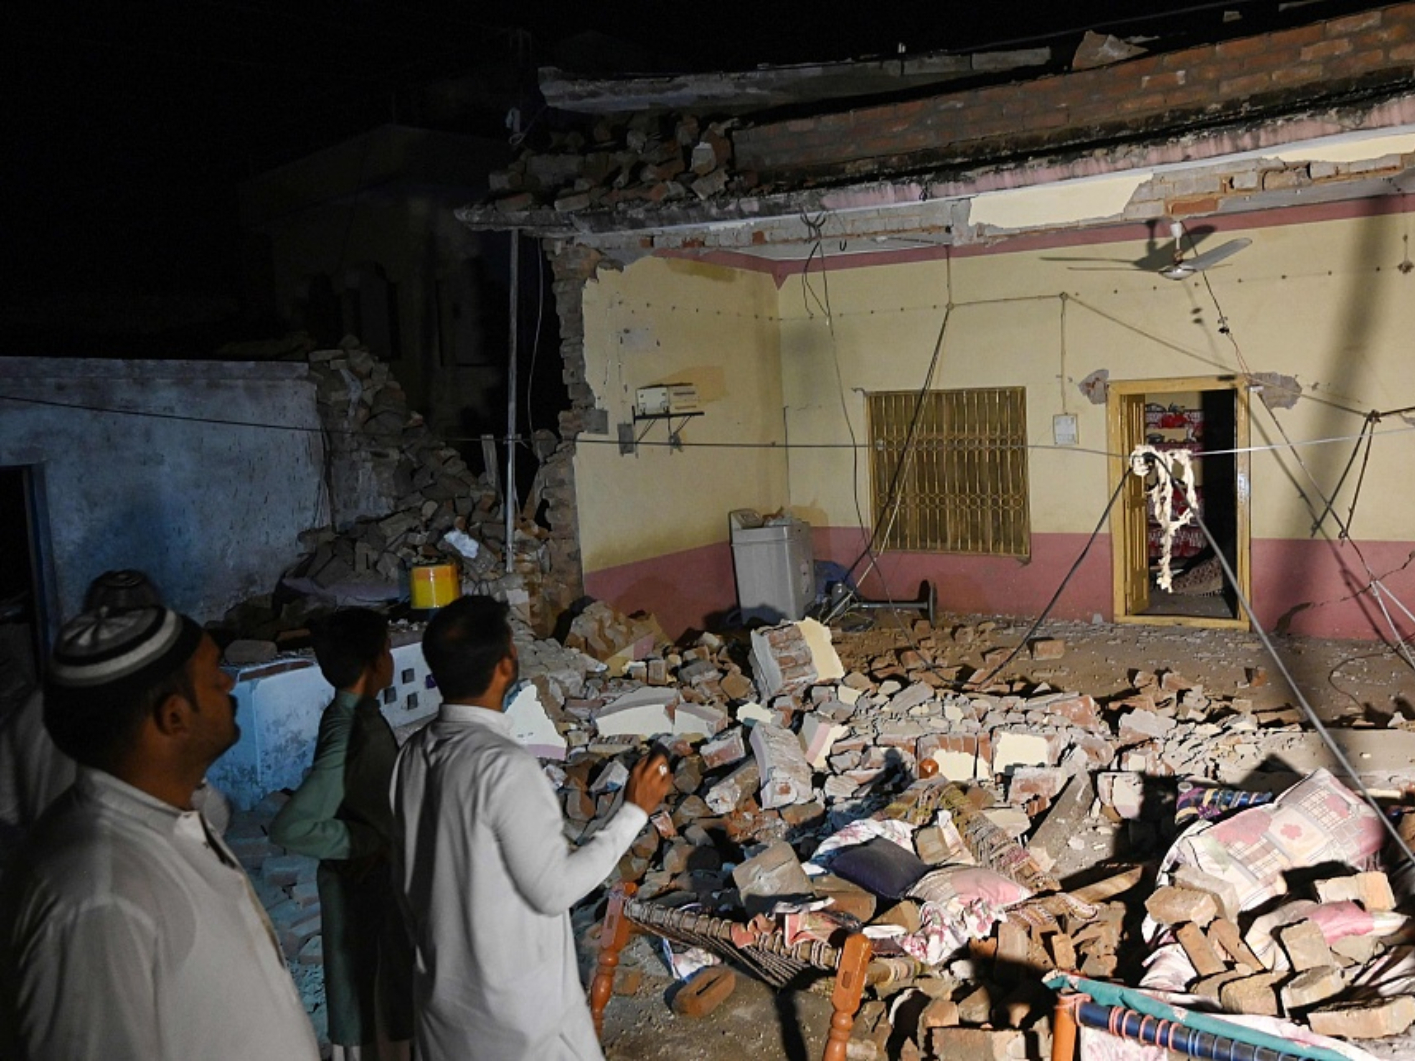 Death toll in Pakistan quake climbs to 22 as rescuers assess damage